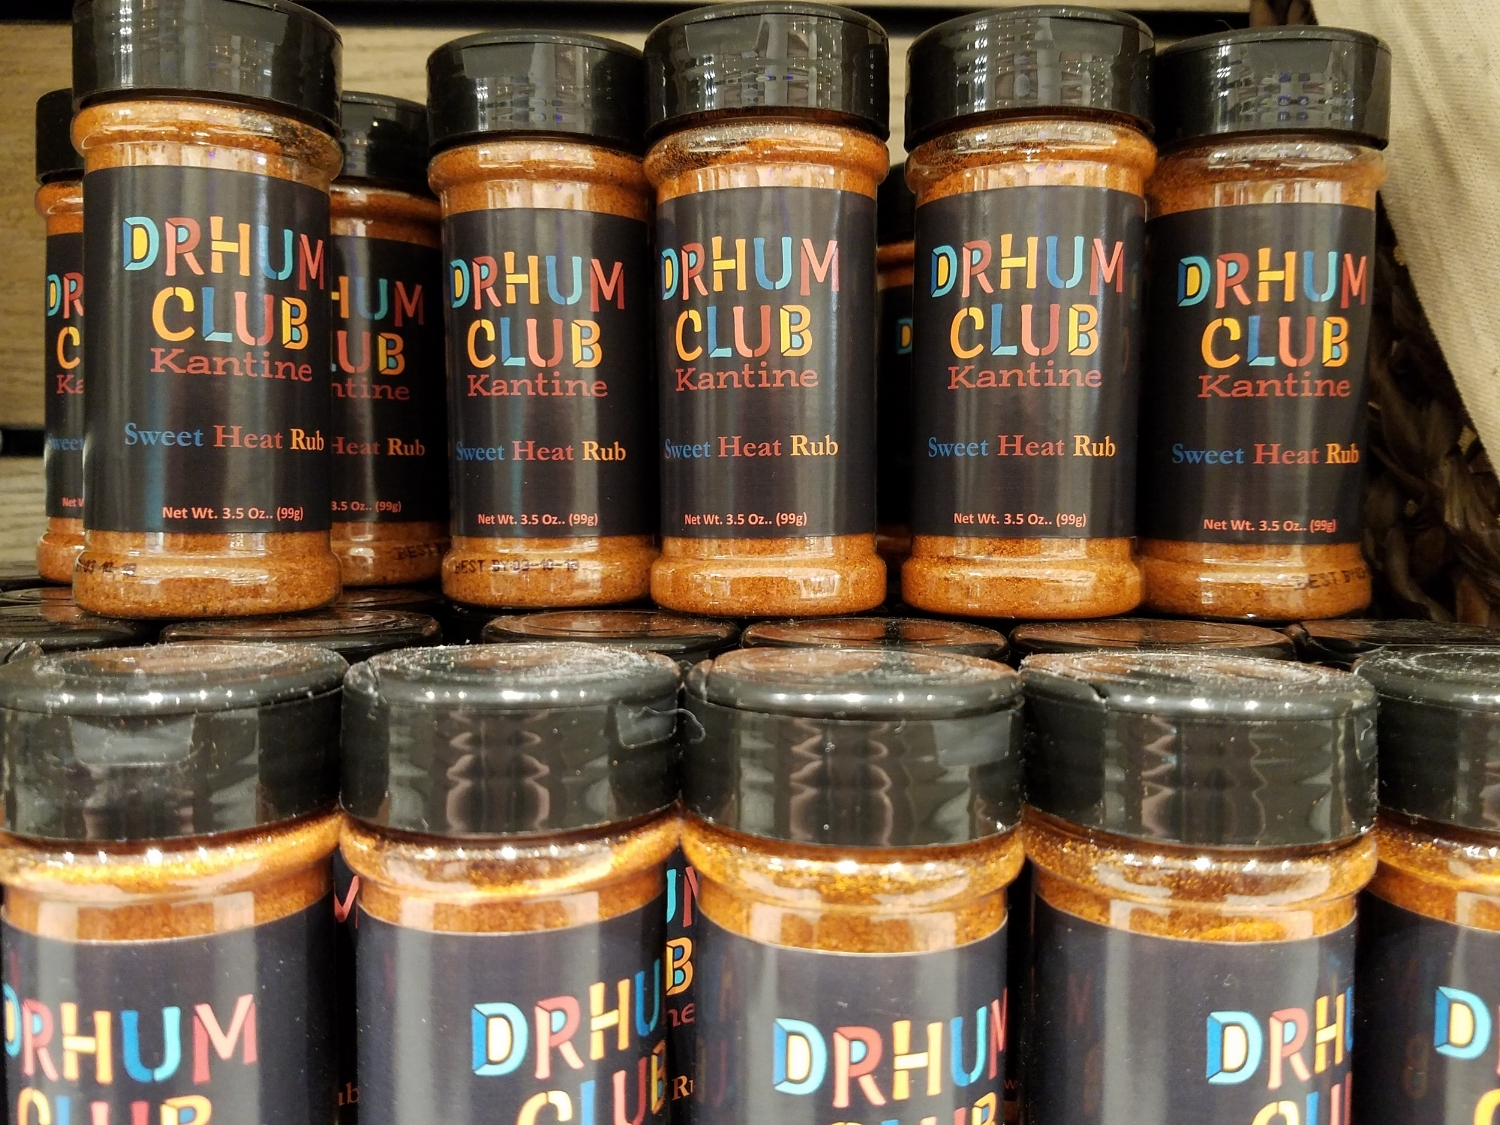 Drhum Club Kantine Sweet Heat Rub Available at New Dutch Trading Co.